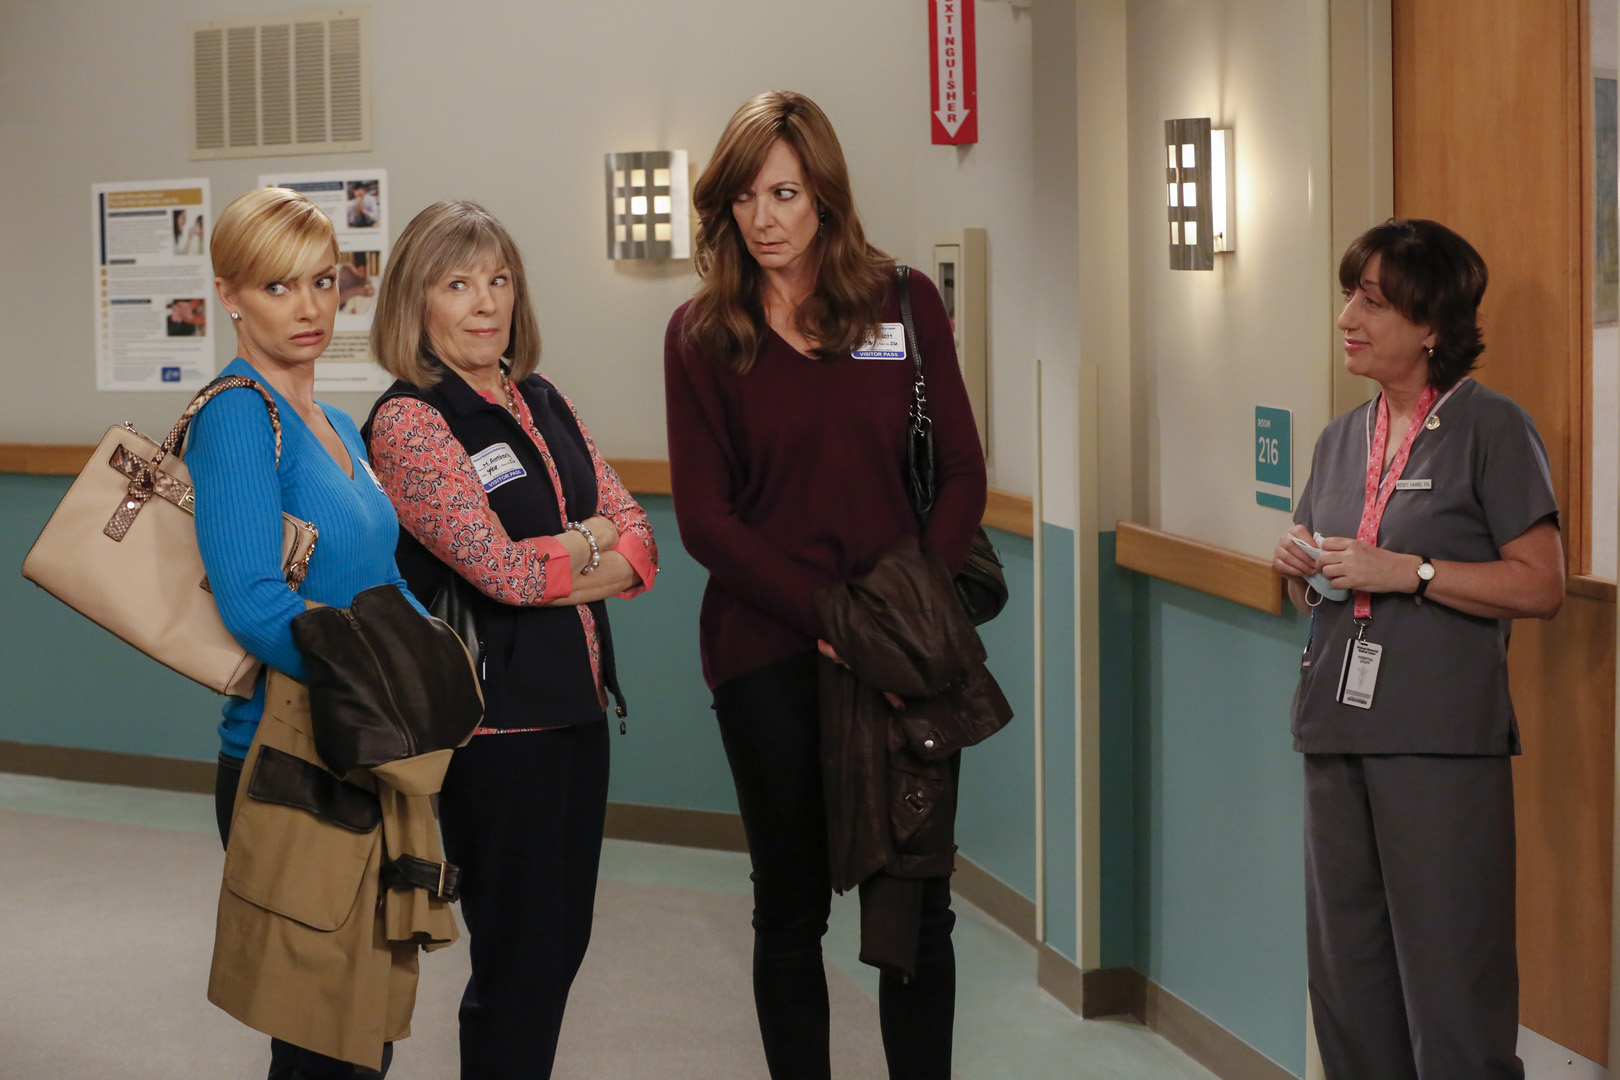 Jill, Marjorie, Bonnie, and Wendy wait outside Christy's hospital room.